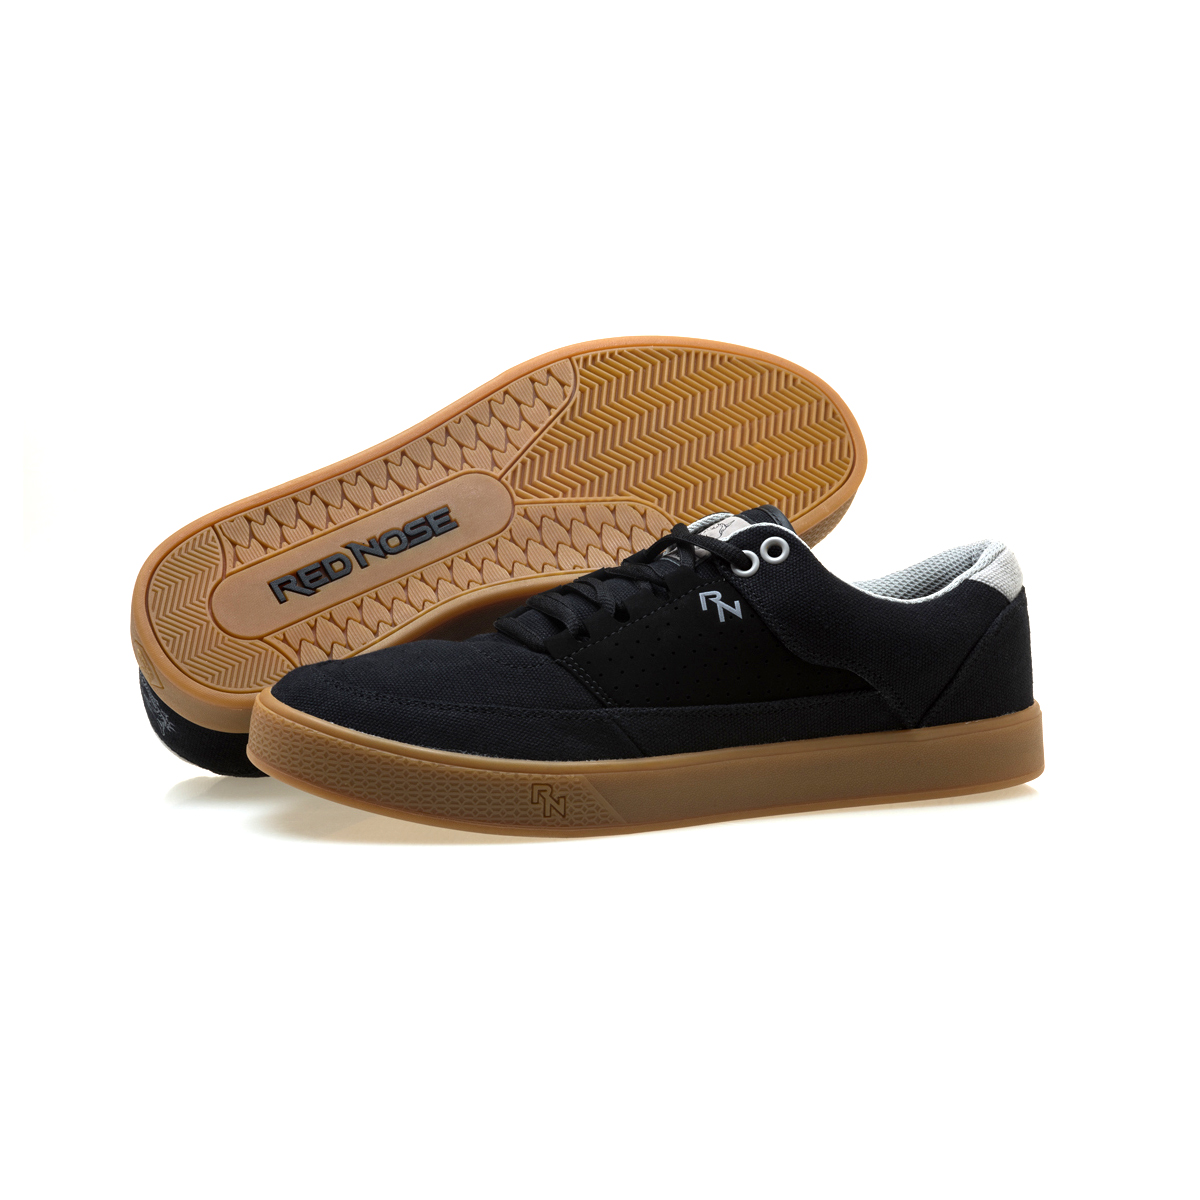 Tênis Red Nose Arion - Preto e Branco 37